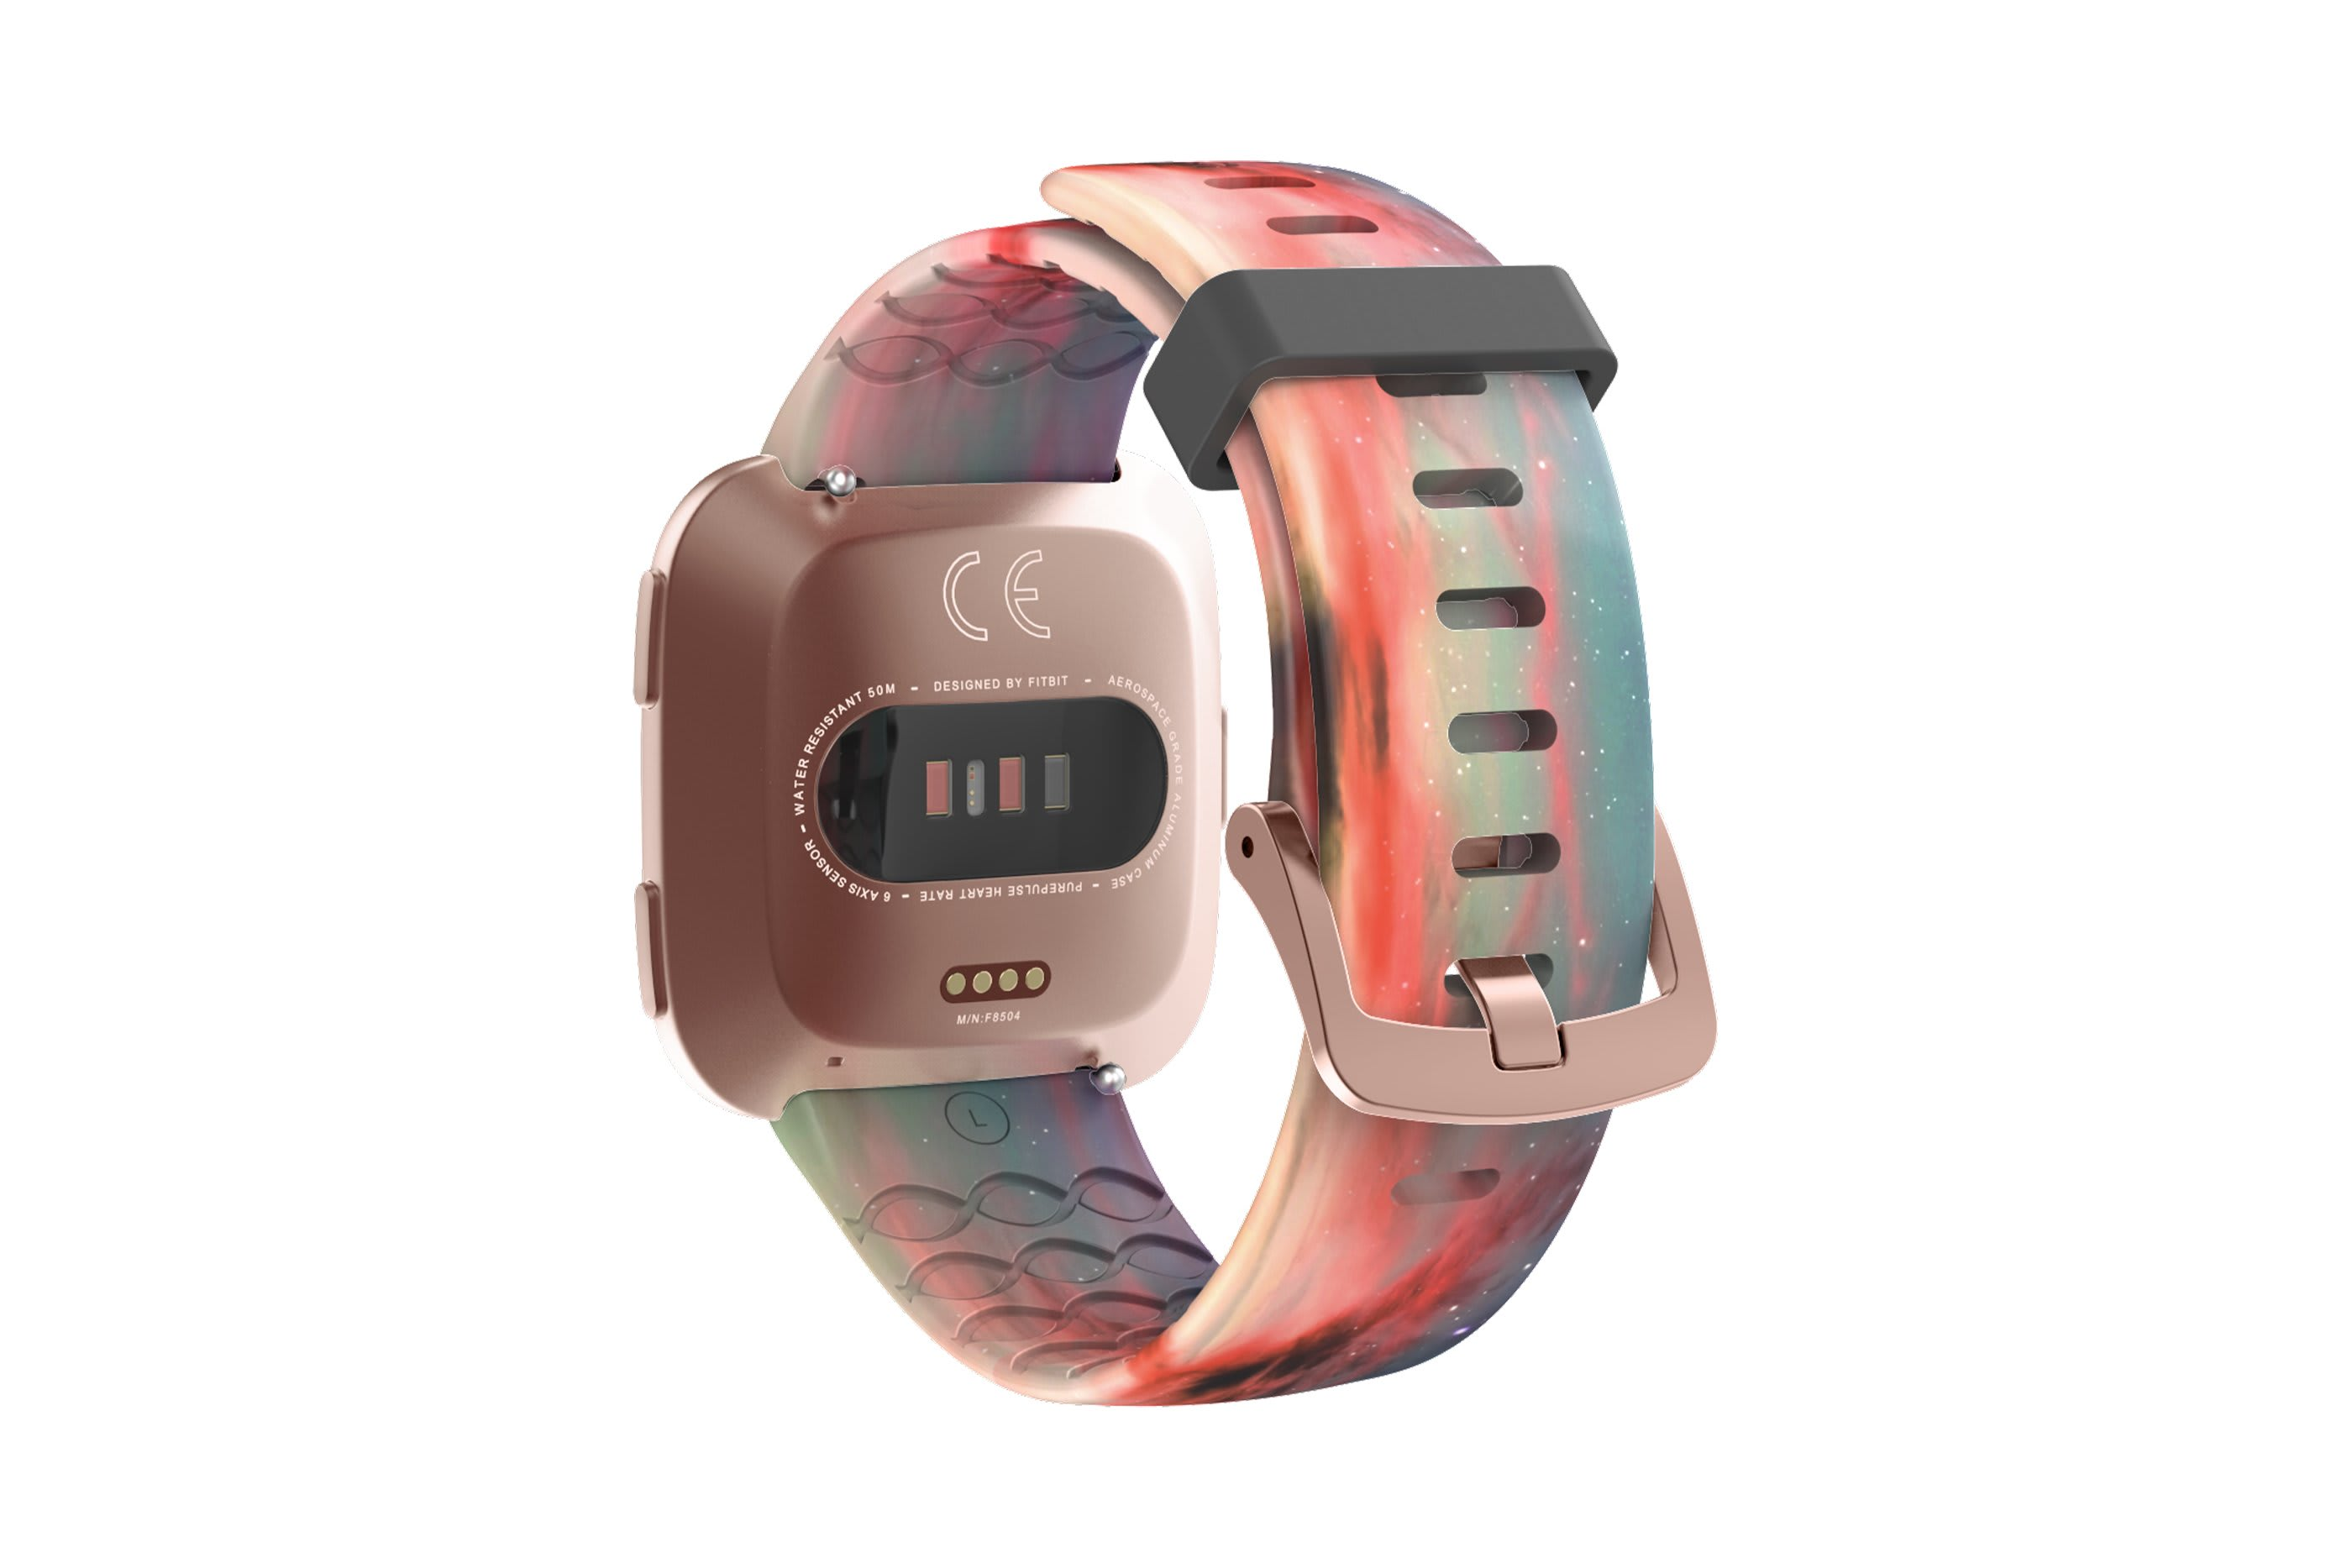 Cirrus fitbit versa watch band with rose gold hardware viewed from top down